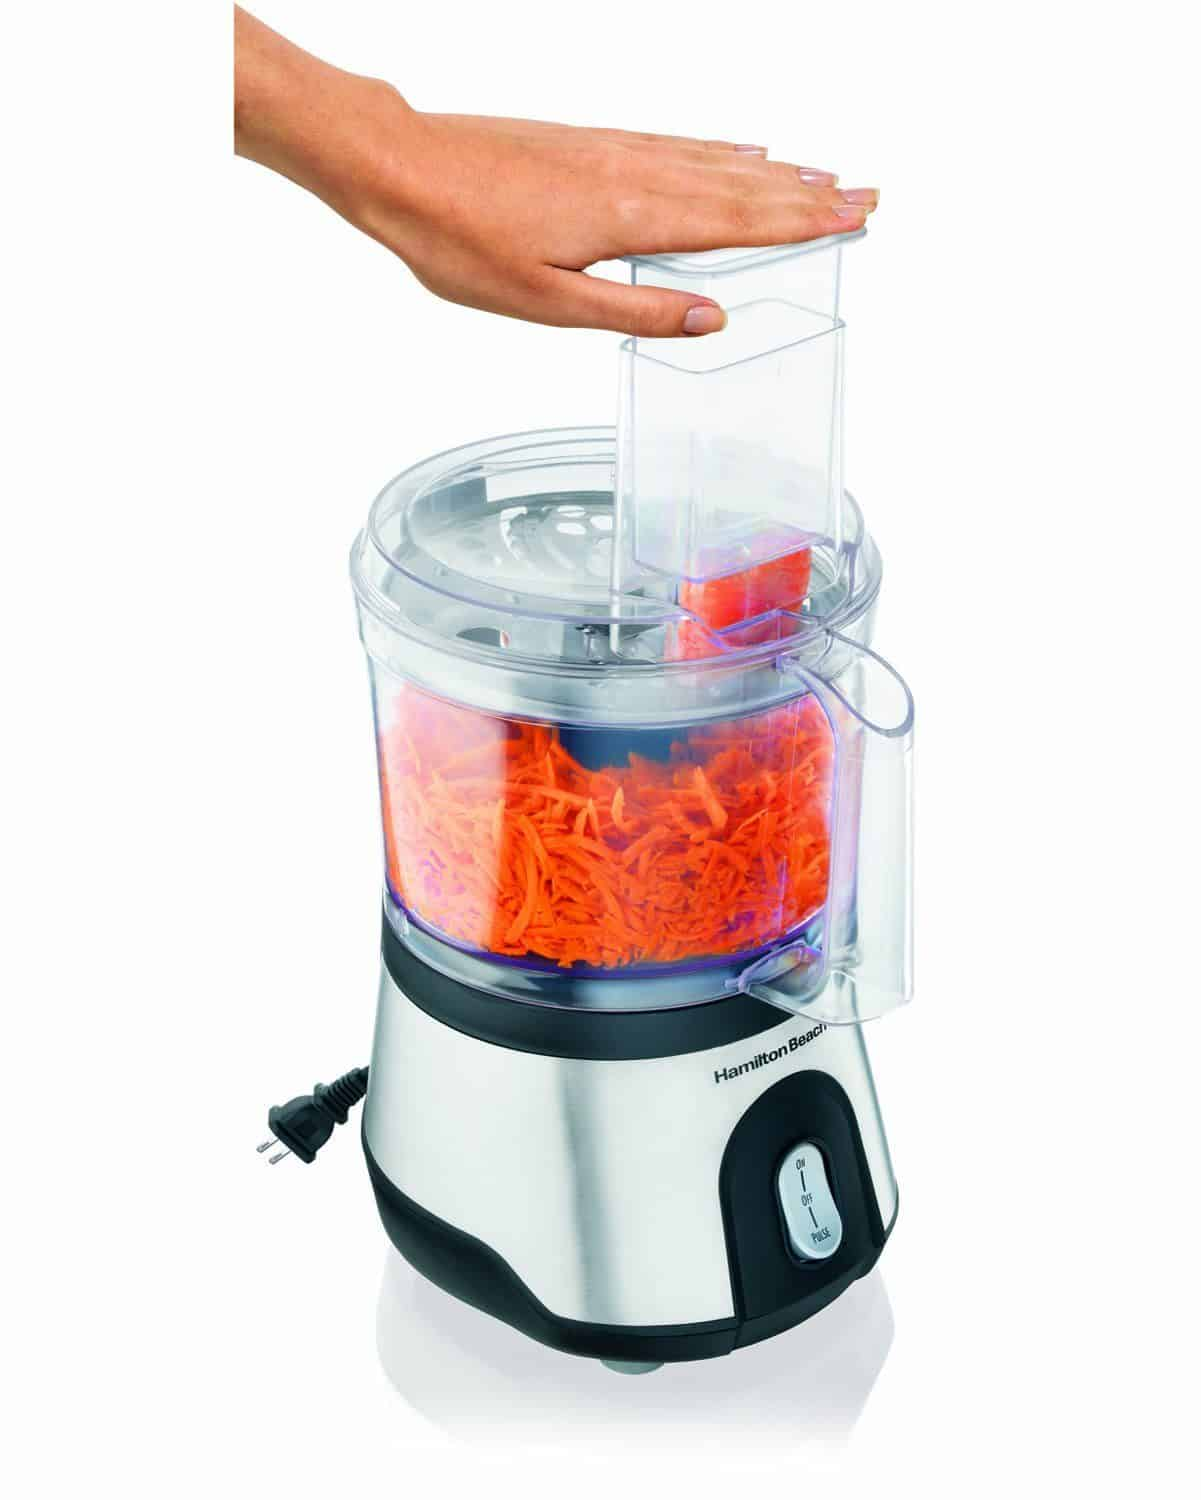 Hamilton Beach 10 Cup Food Processor with Compact Storage review